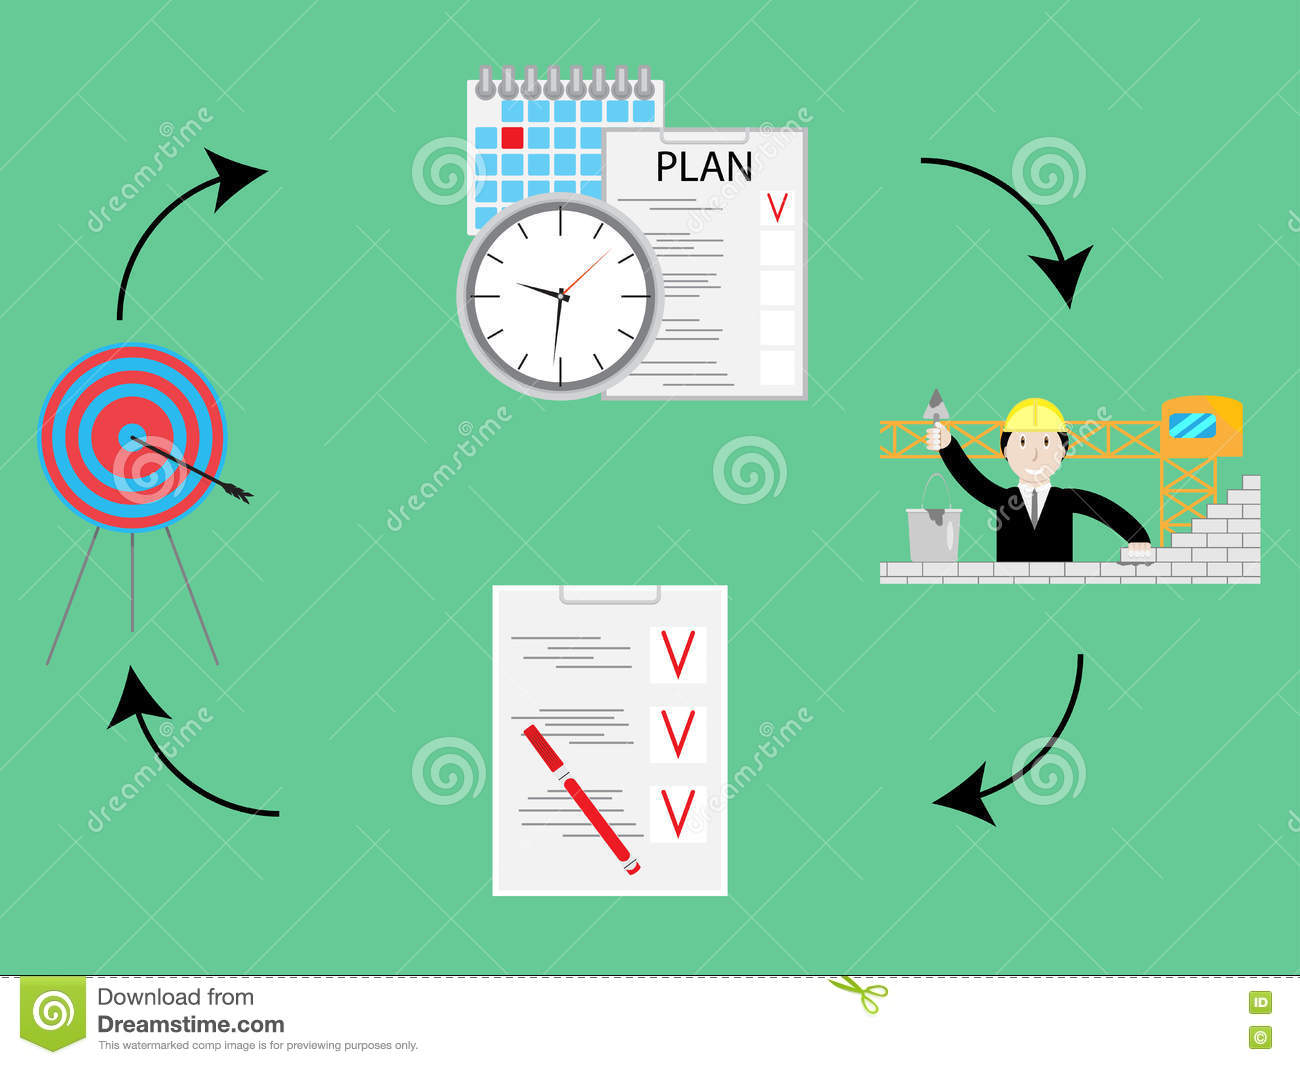 Illustration Of Calendar Method : Plan and do check act pdca cycle concept stock vector